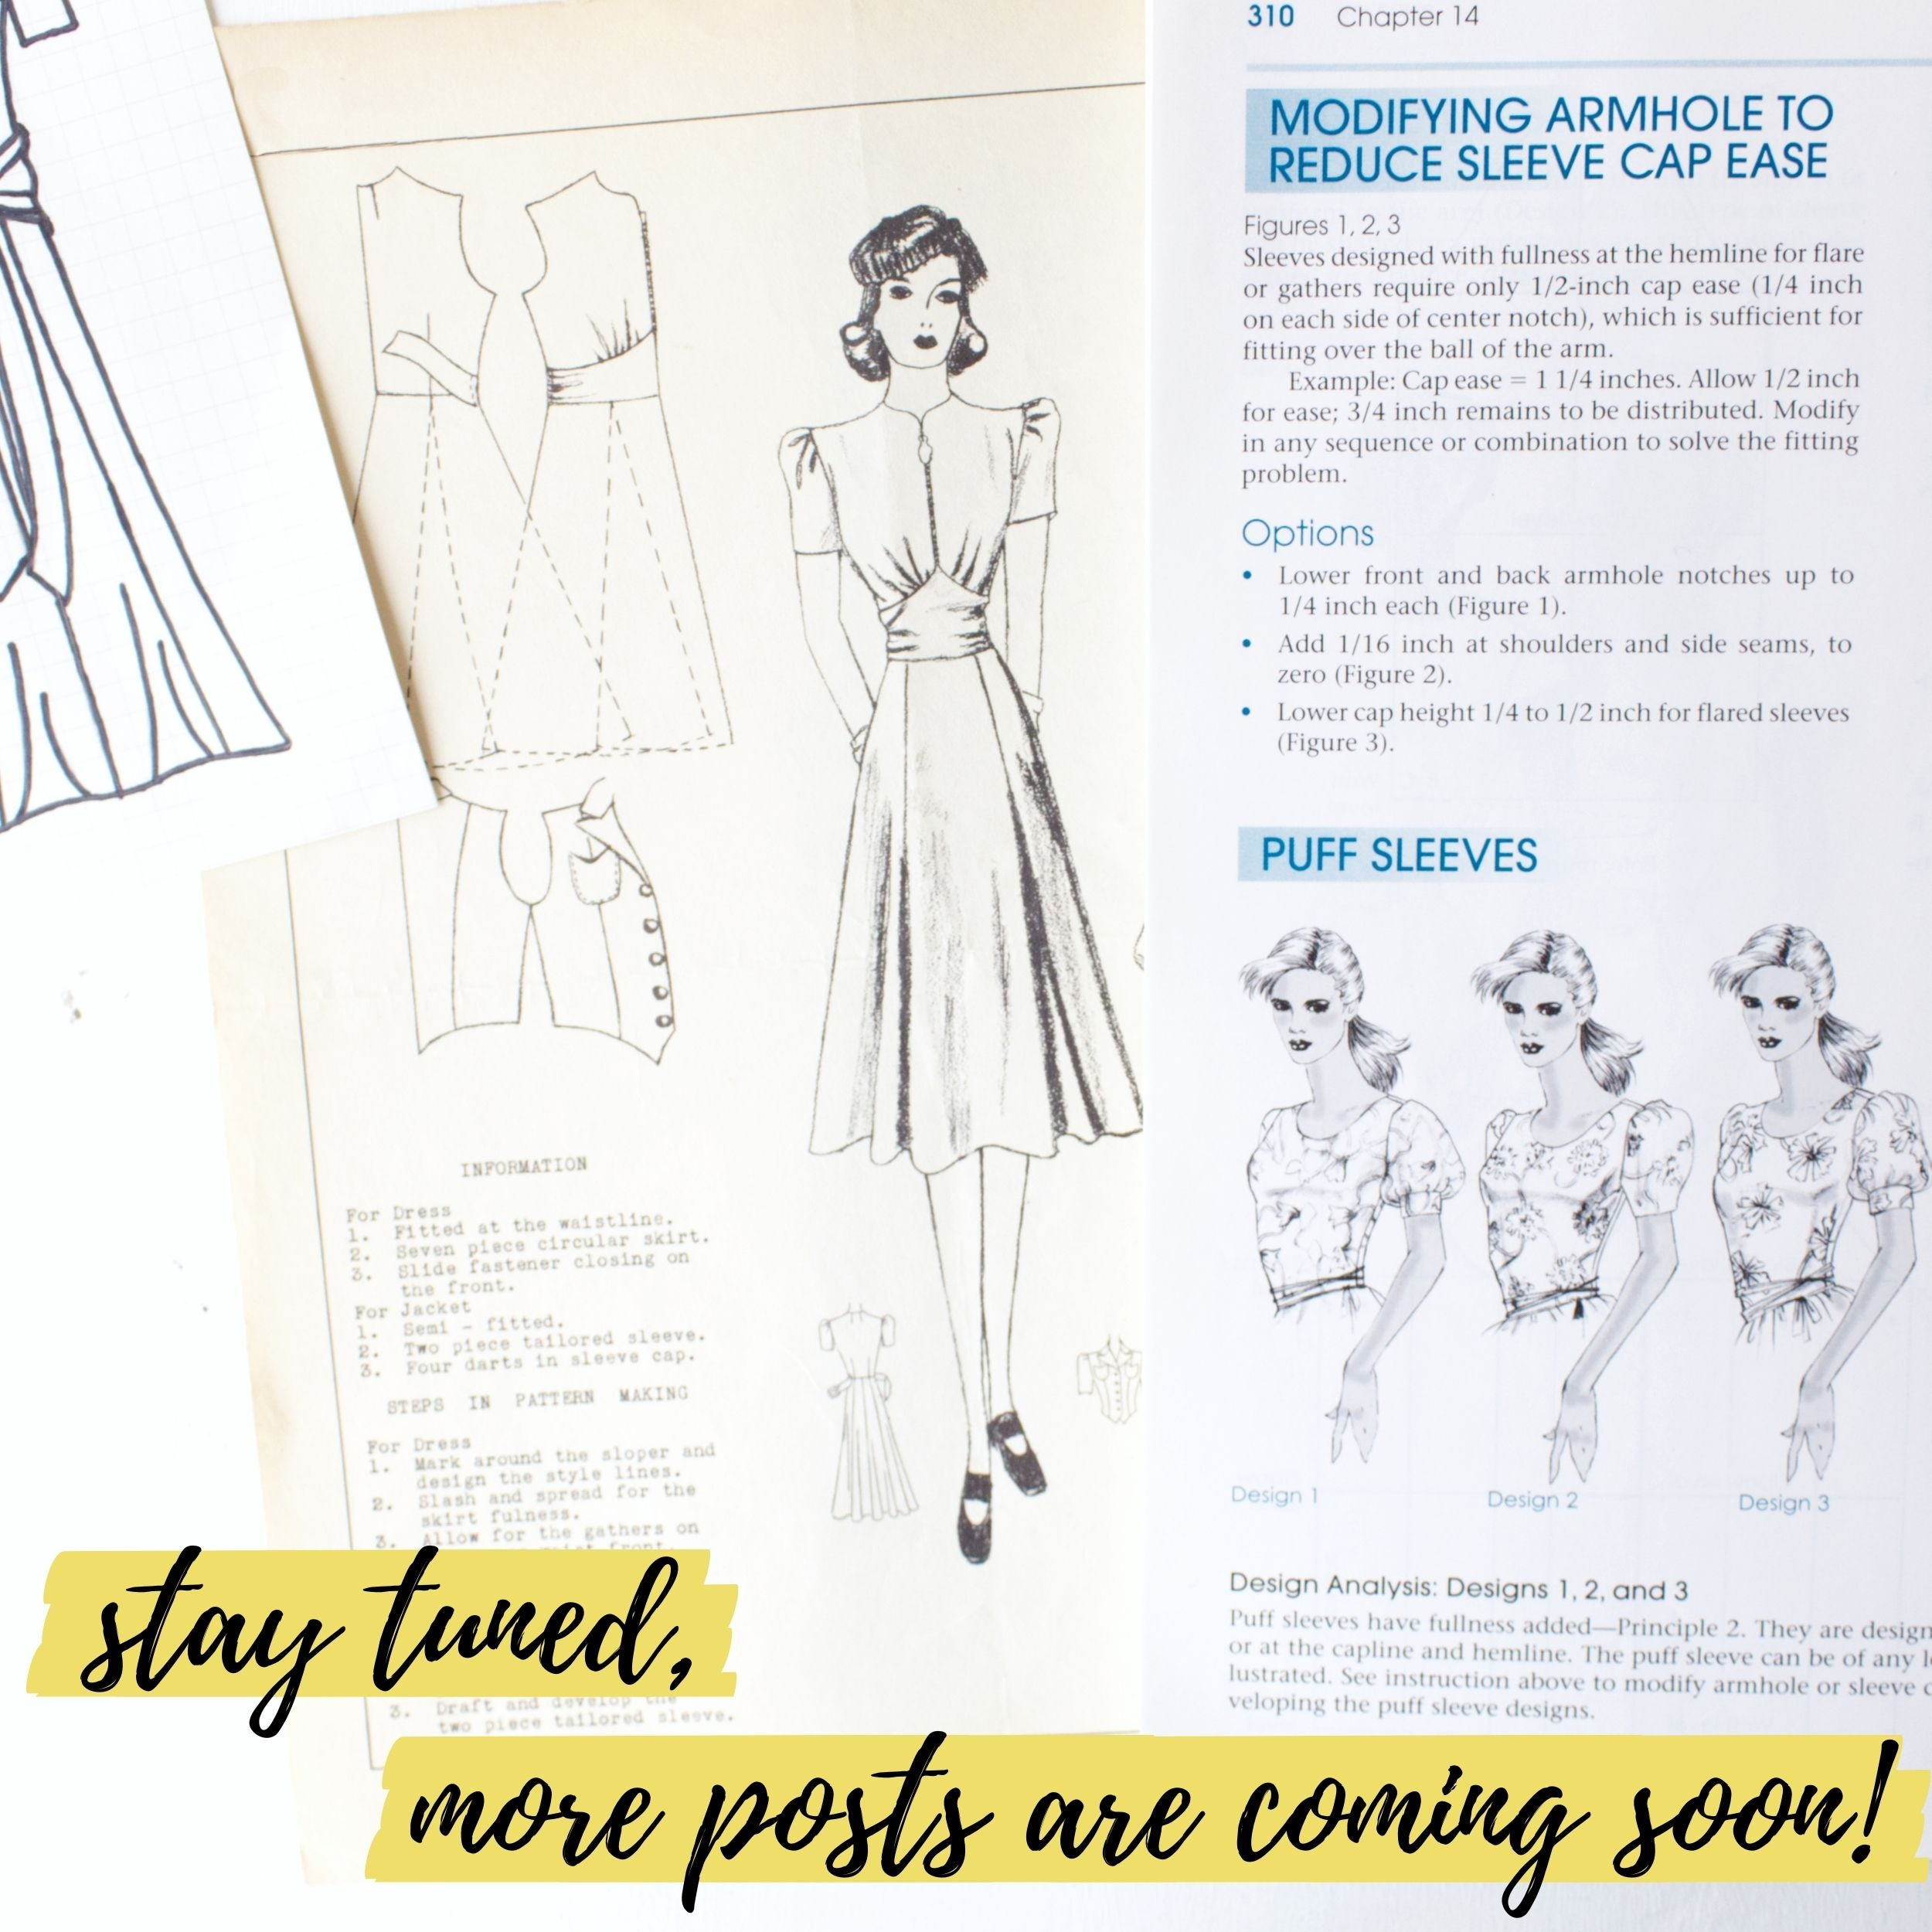 Stay tuned, more vintage sewing pattern posts are coming soon!